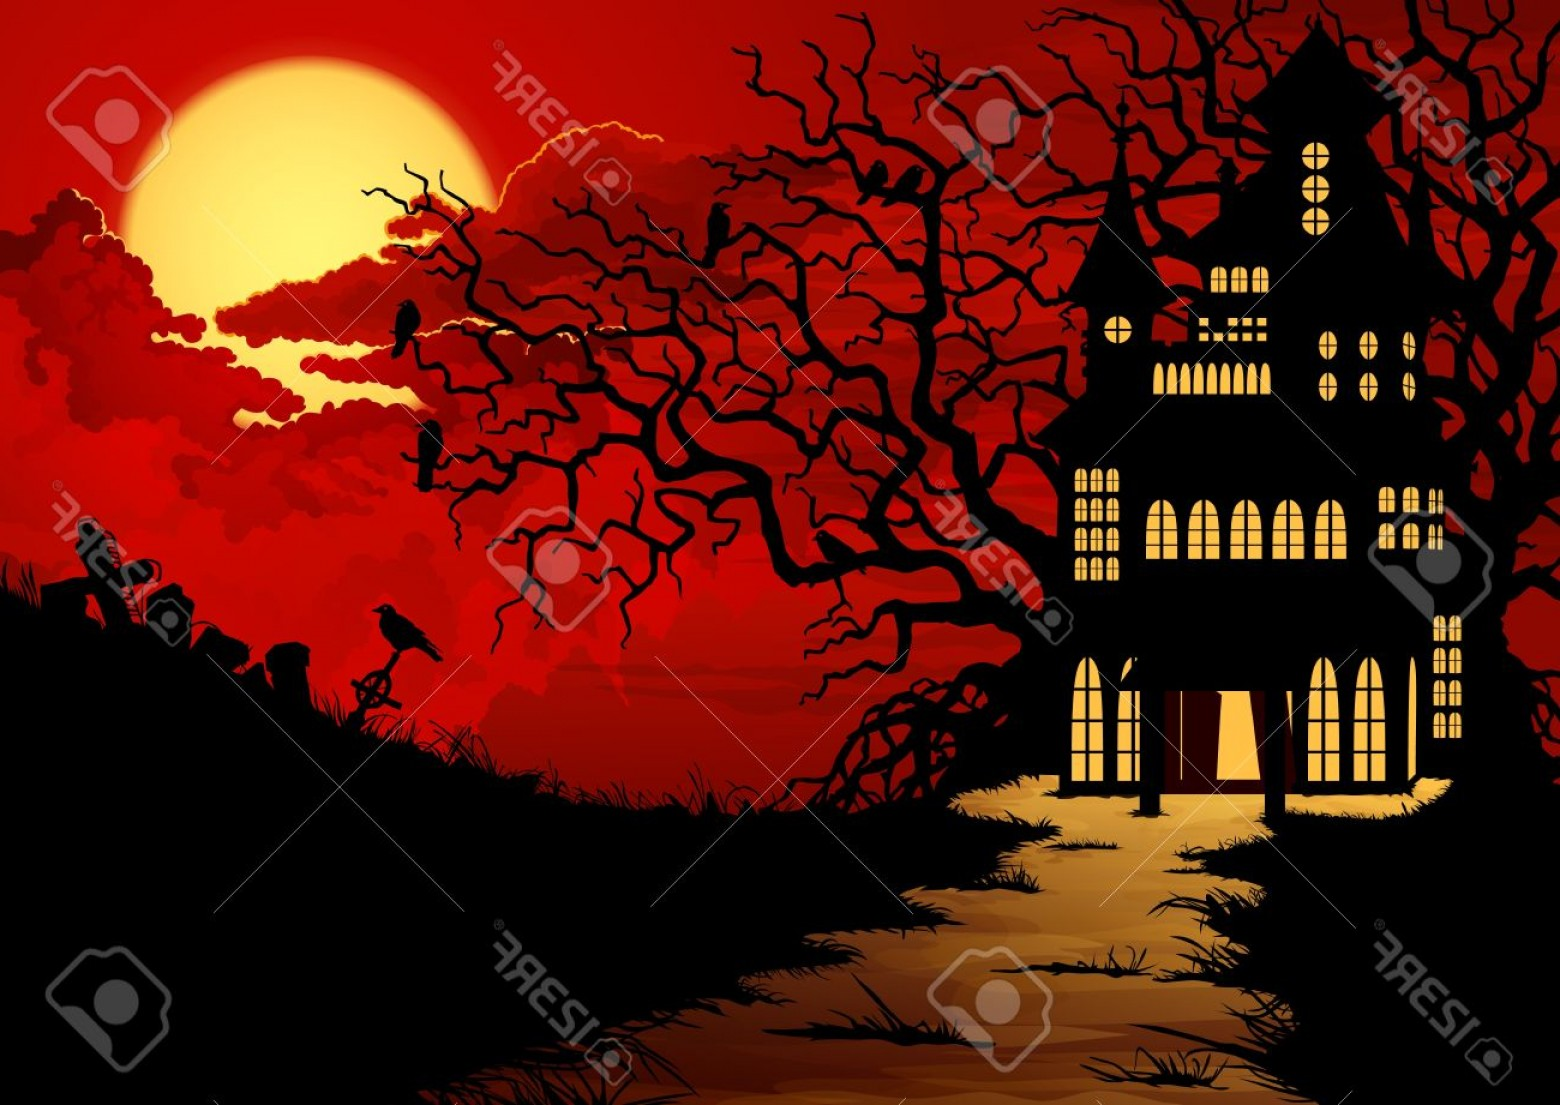 Halloween Haunted House Silhouette Vector: Photohalloween Background With Haunted House And Cemetery